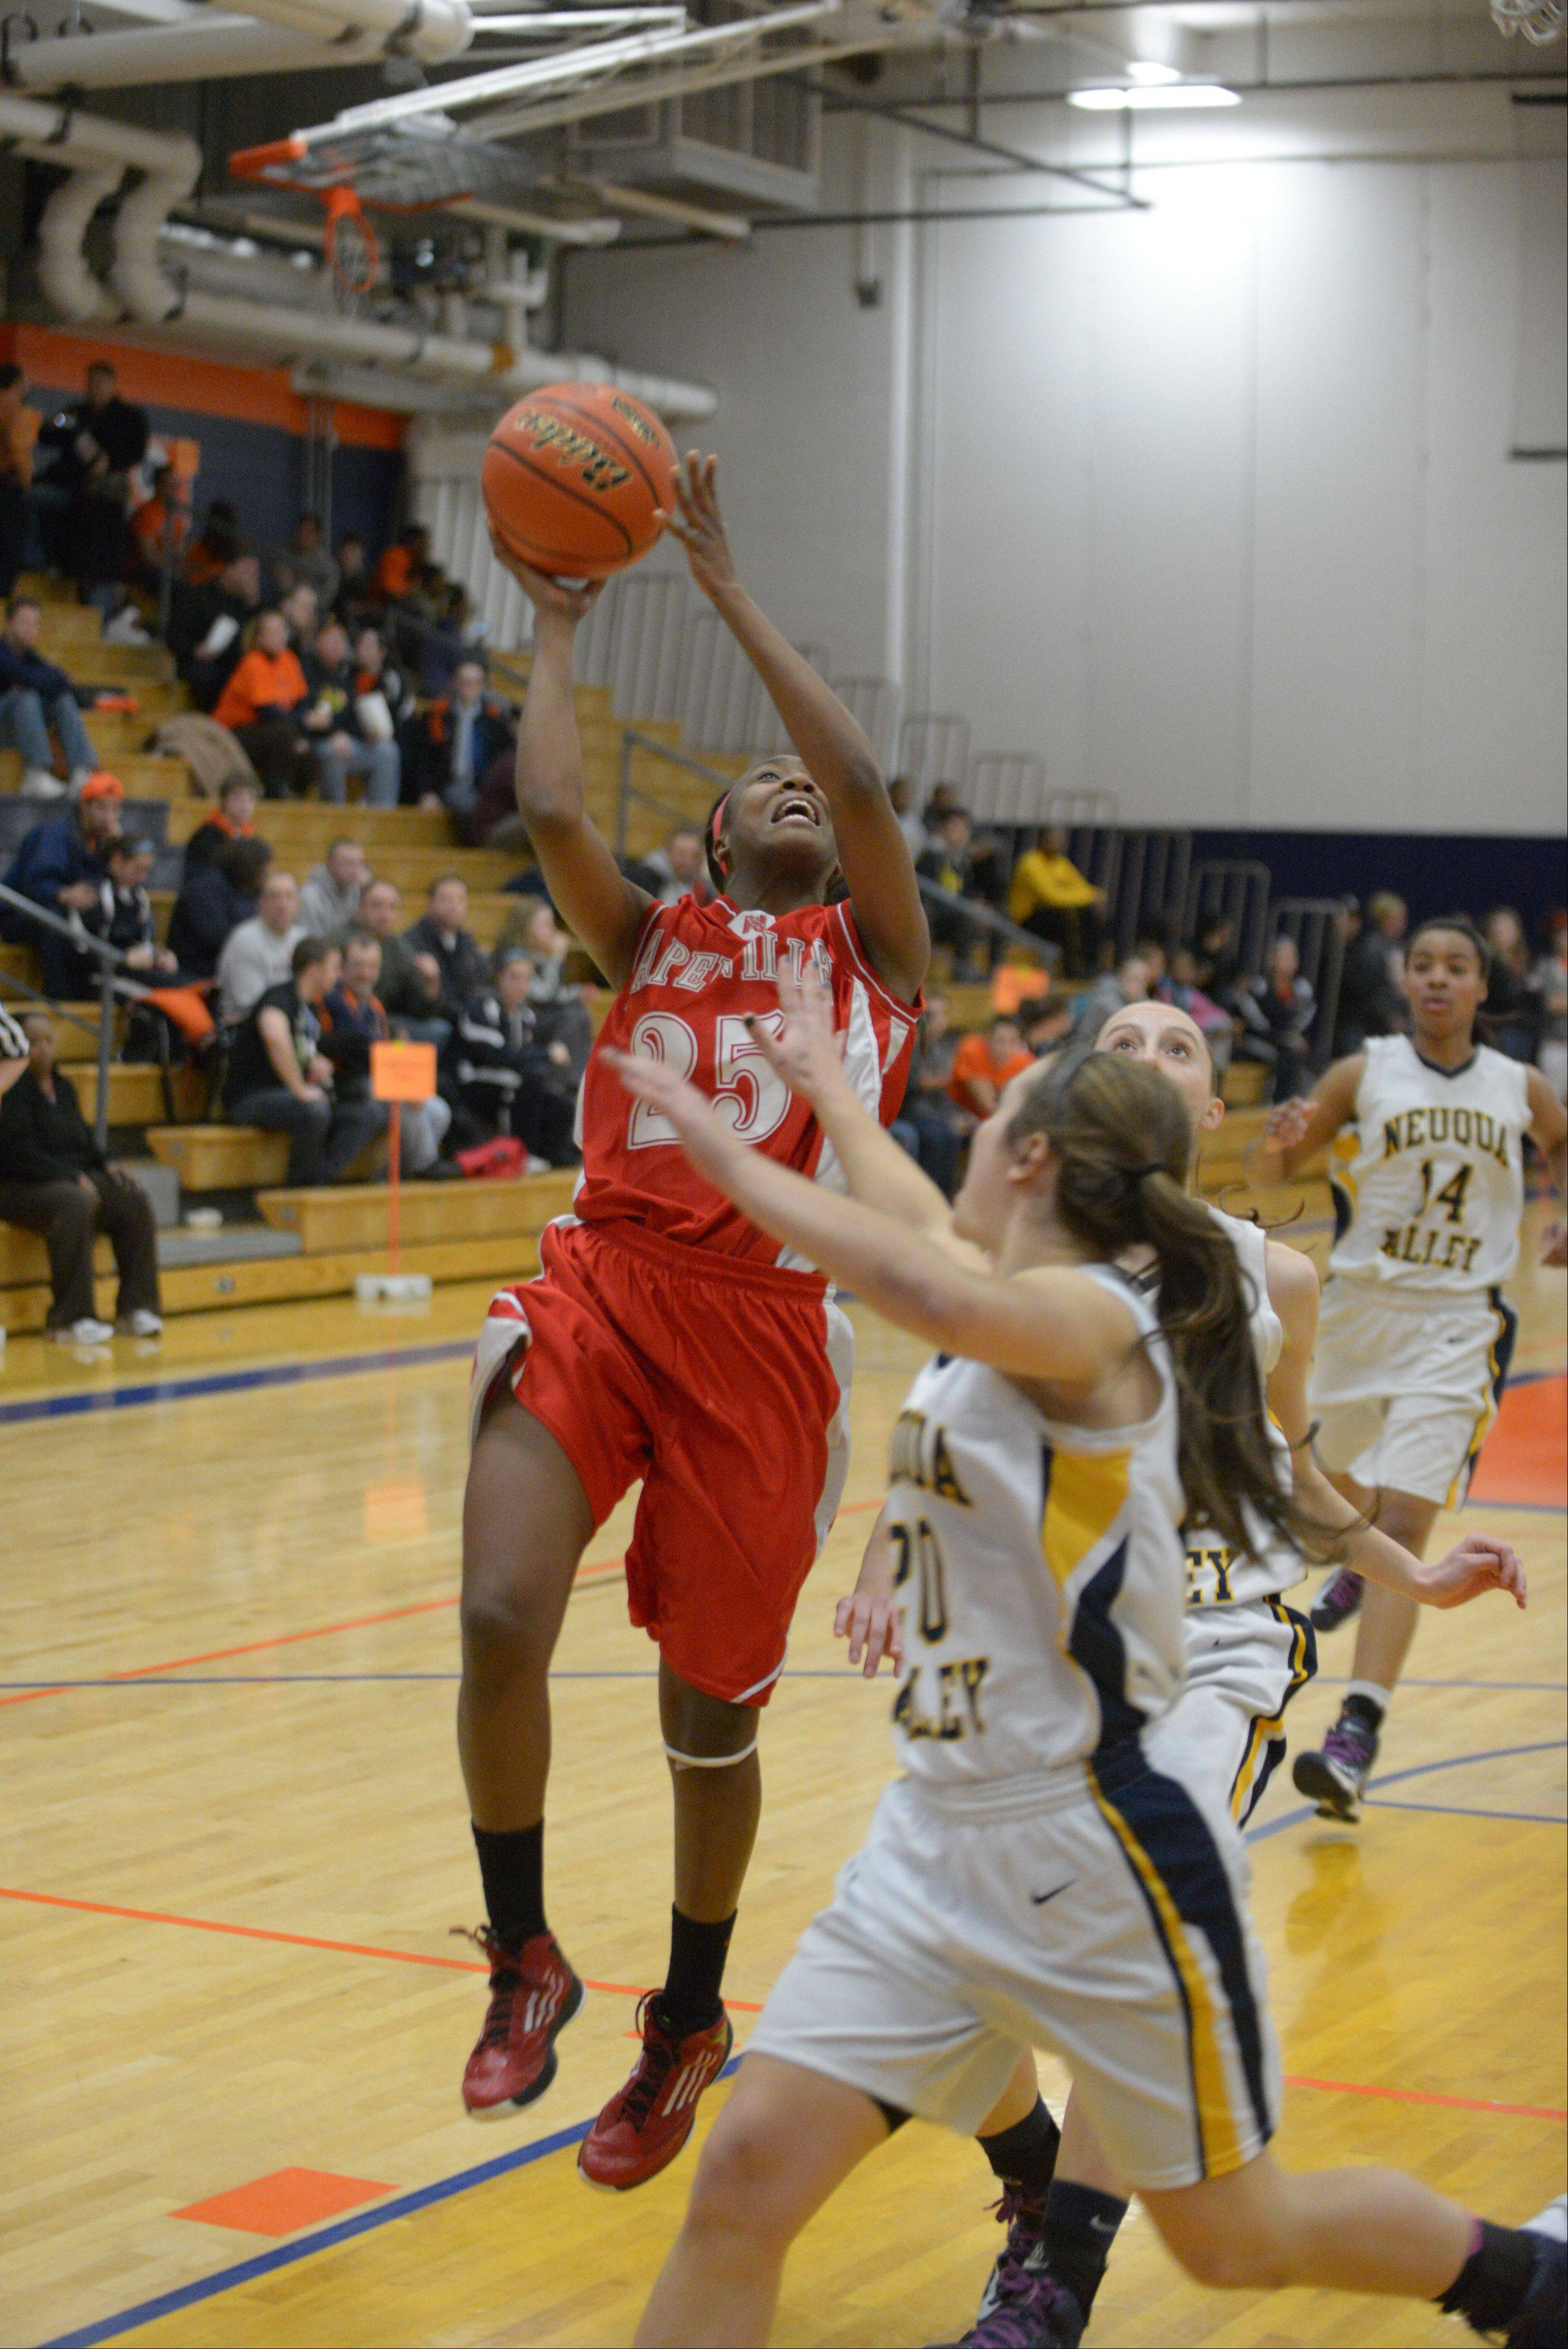 Naperville Central played Neuqua Valley in Class 4A girls basketball sectional semifinals Tuesday night at Oswego High School.